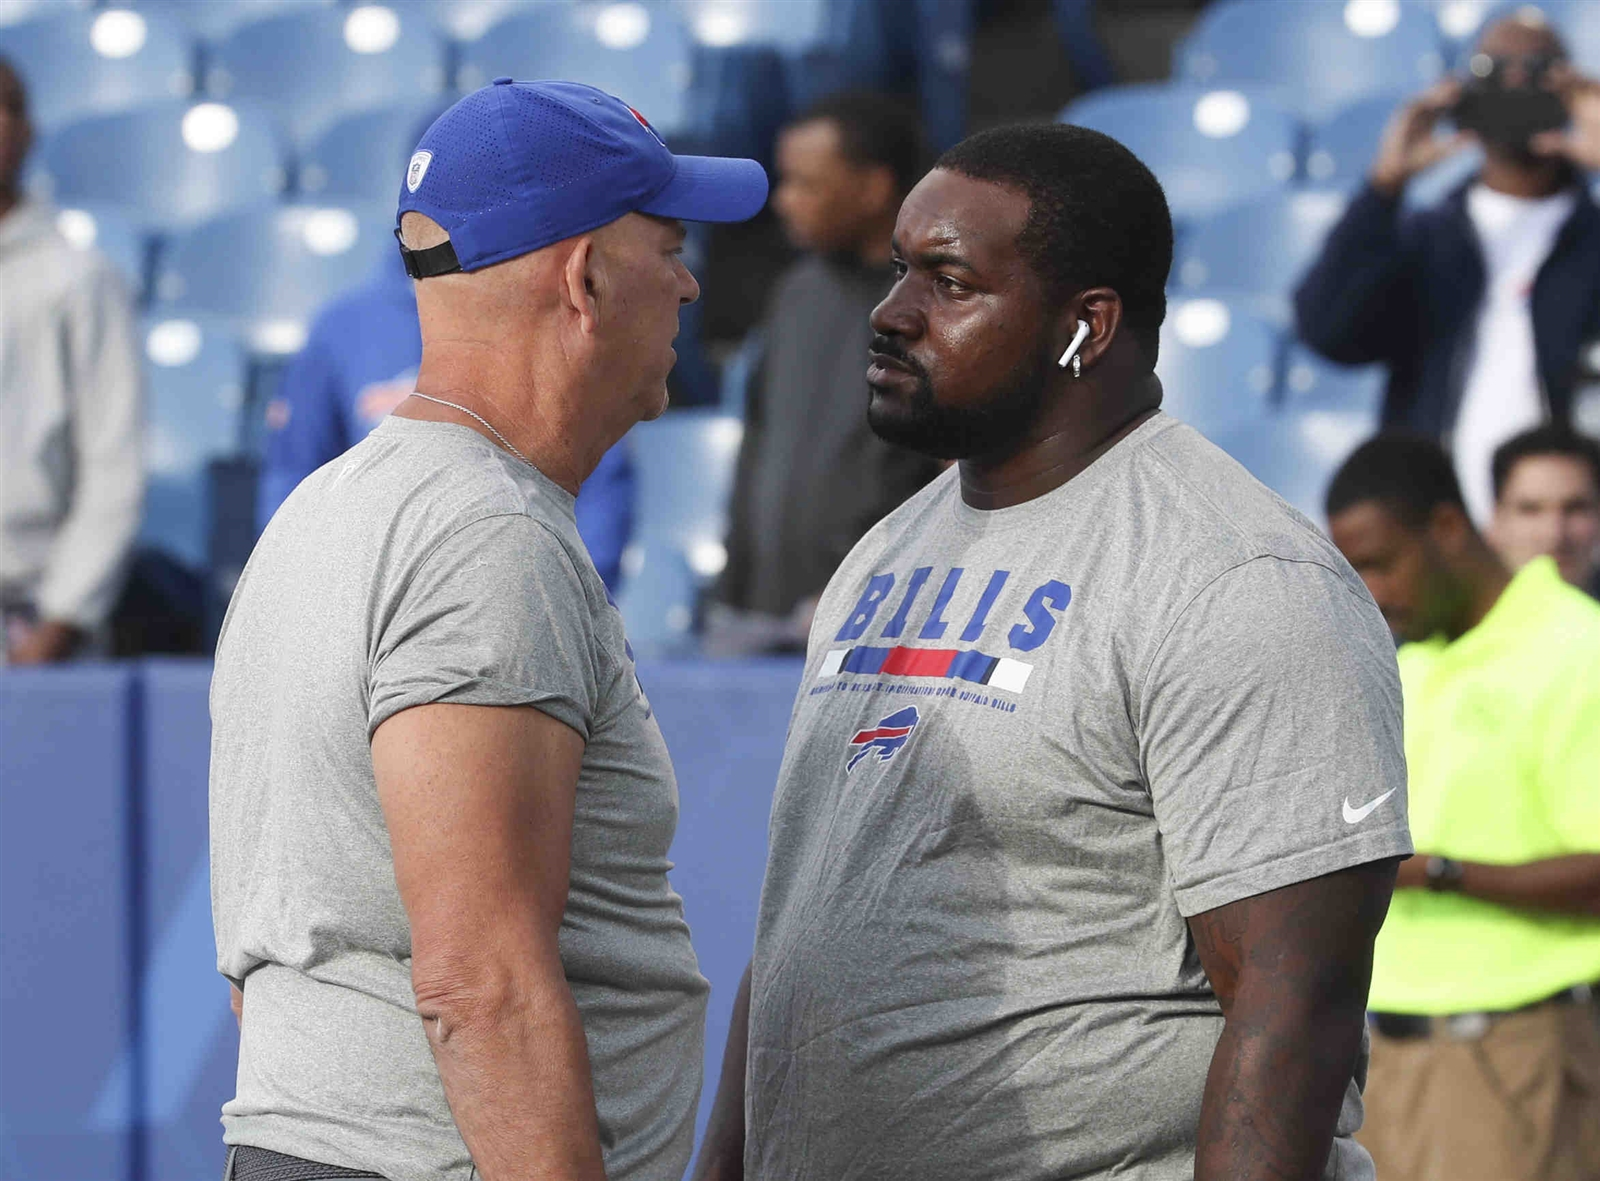 Buffalo Bills nose tackle Marcell Dareus has a talk with  defensive line coach Mike Waufle before the game.